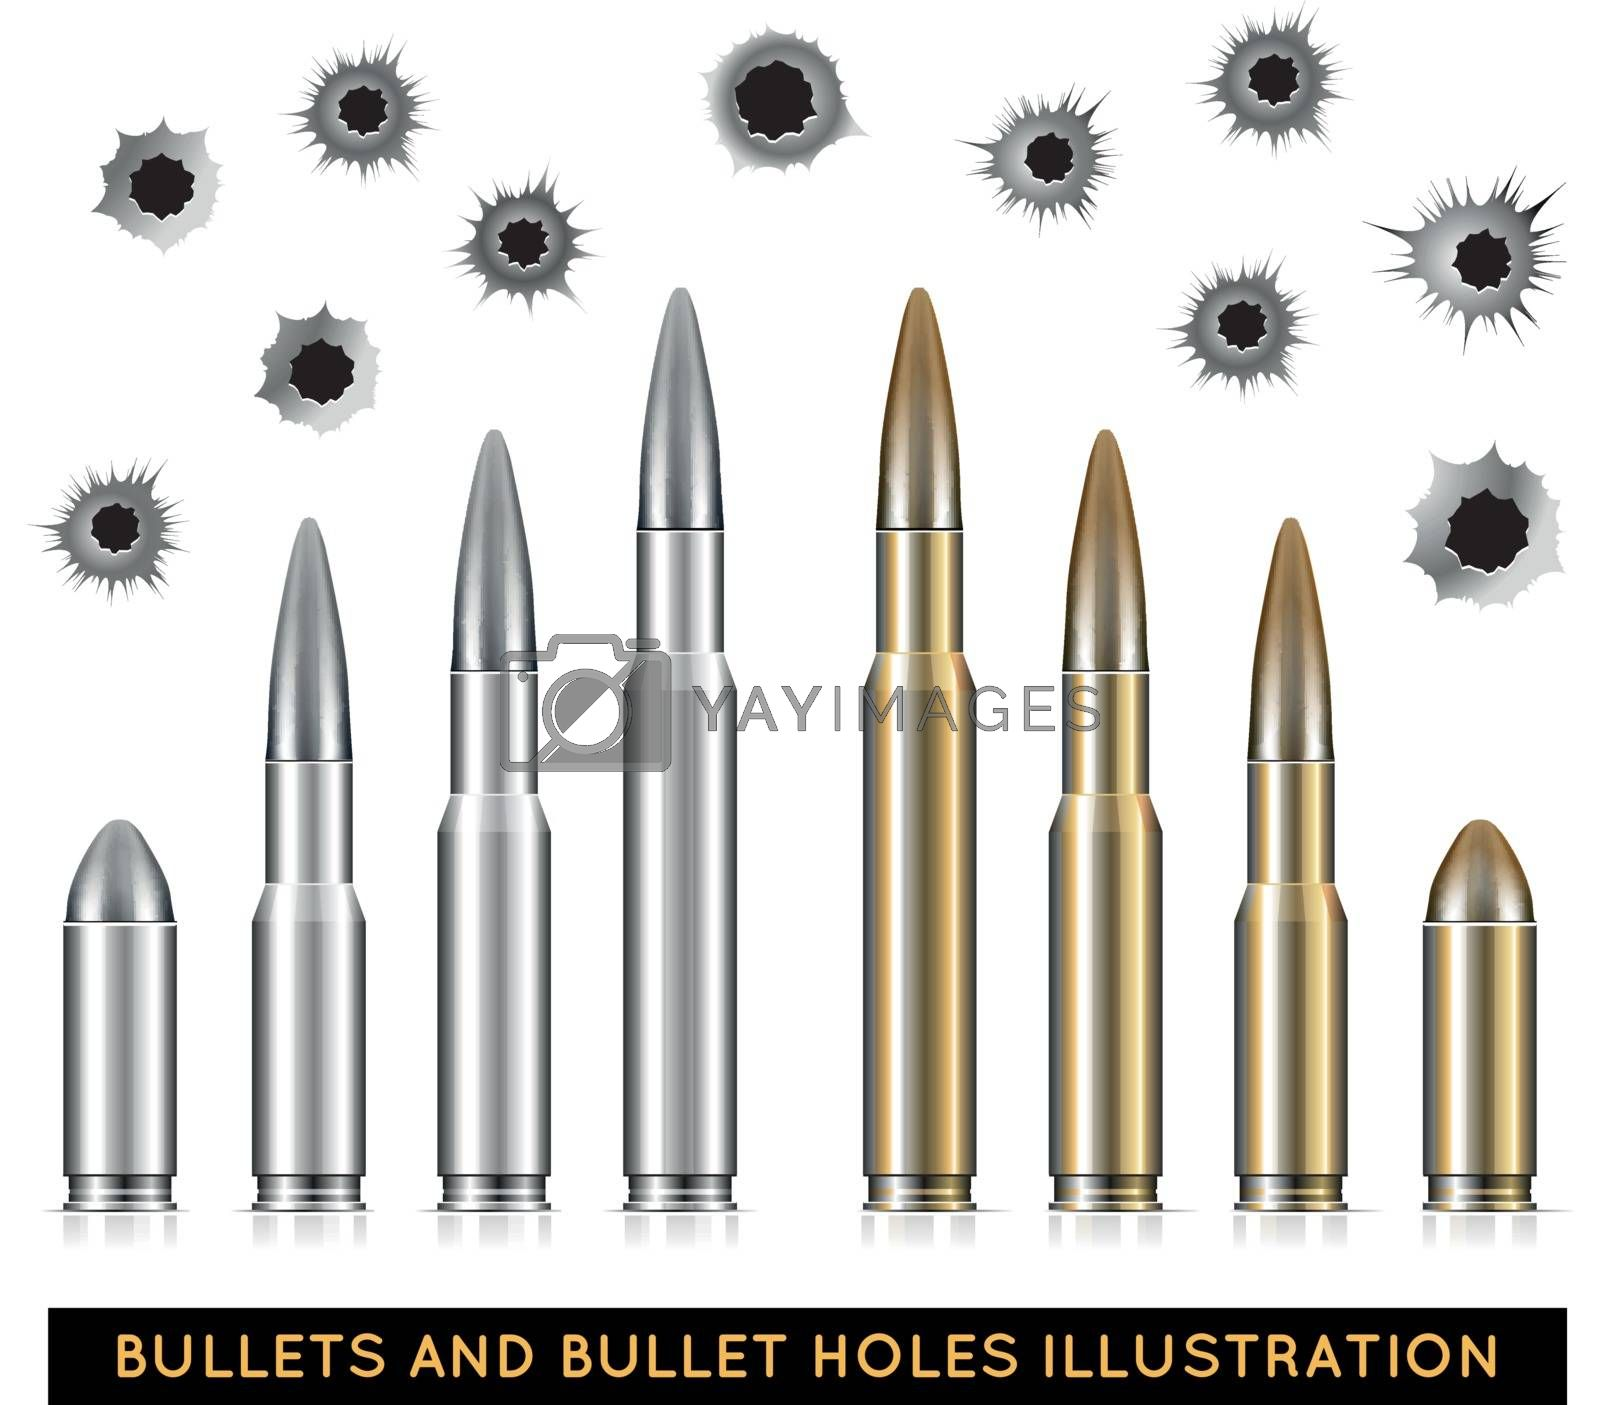 Bullets and bullet holes. Vector illustration on white background